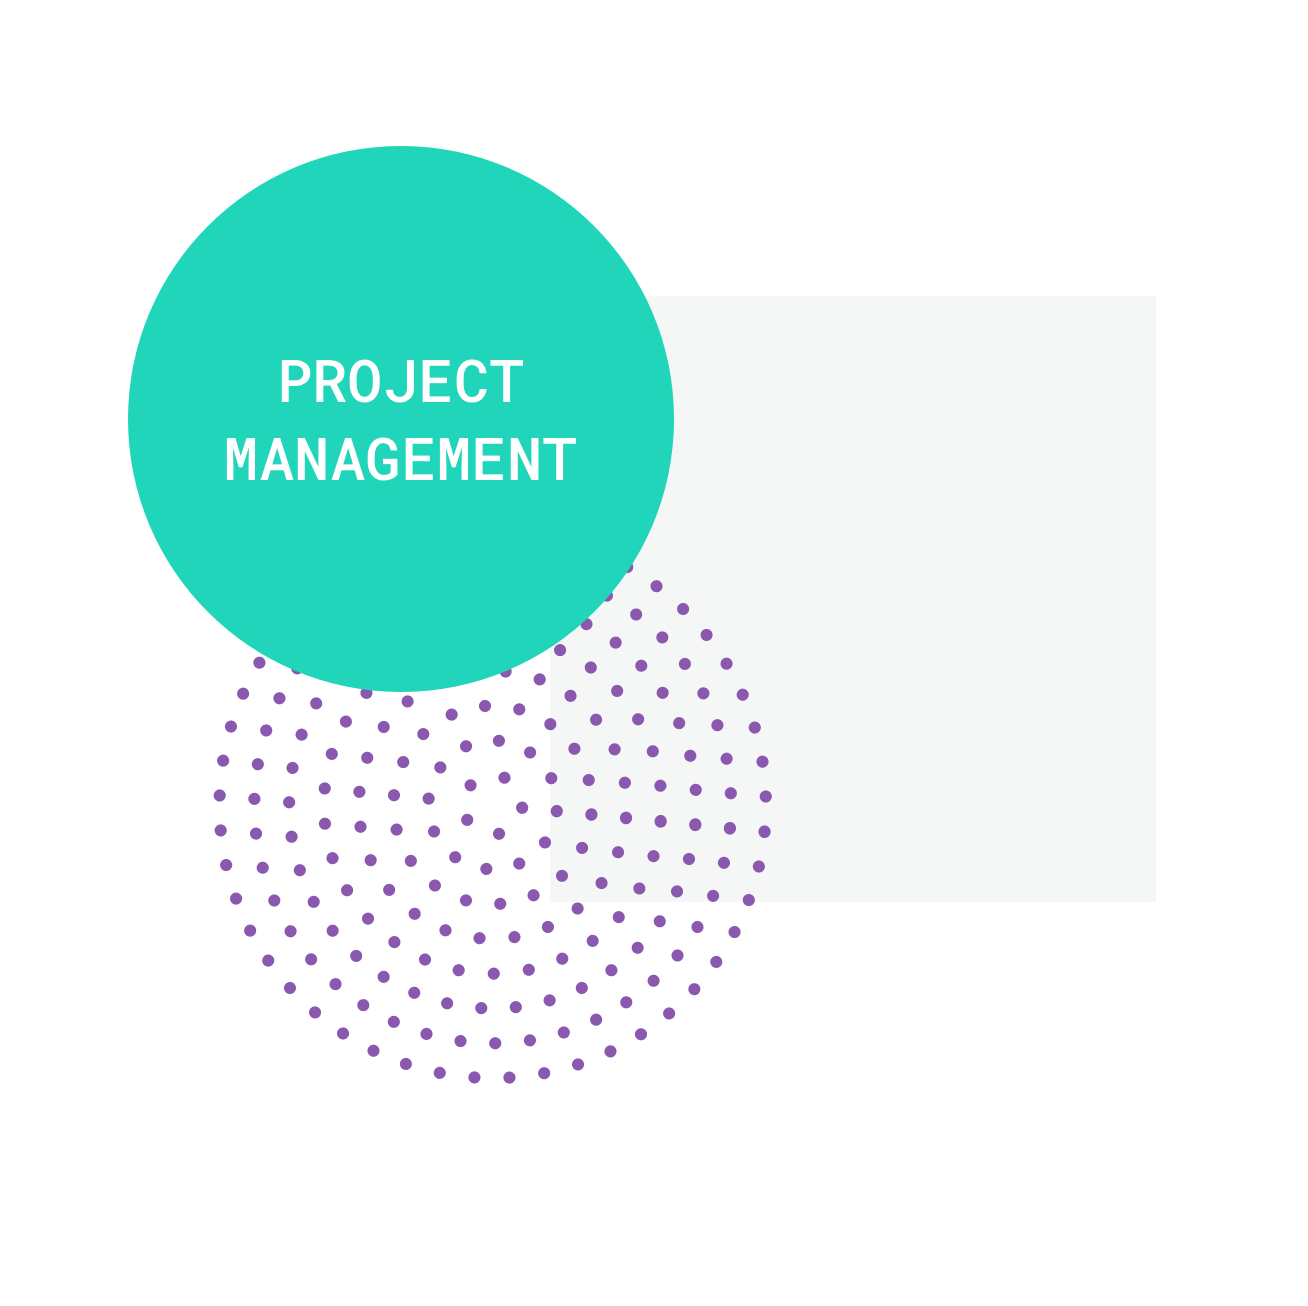 Project managment Tweet Image